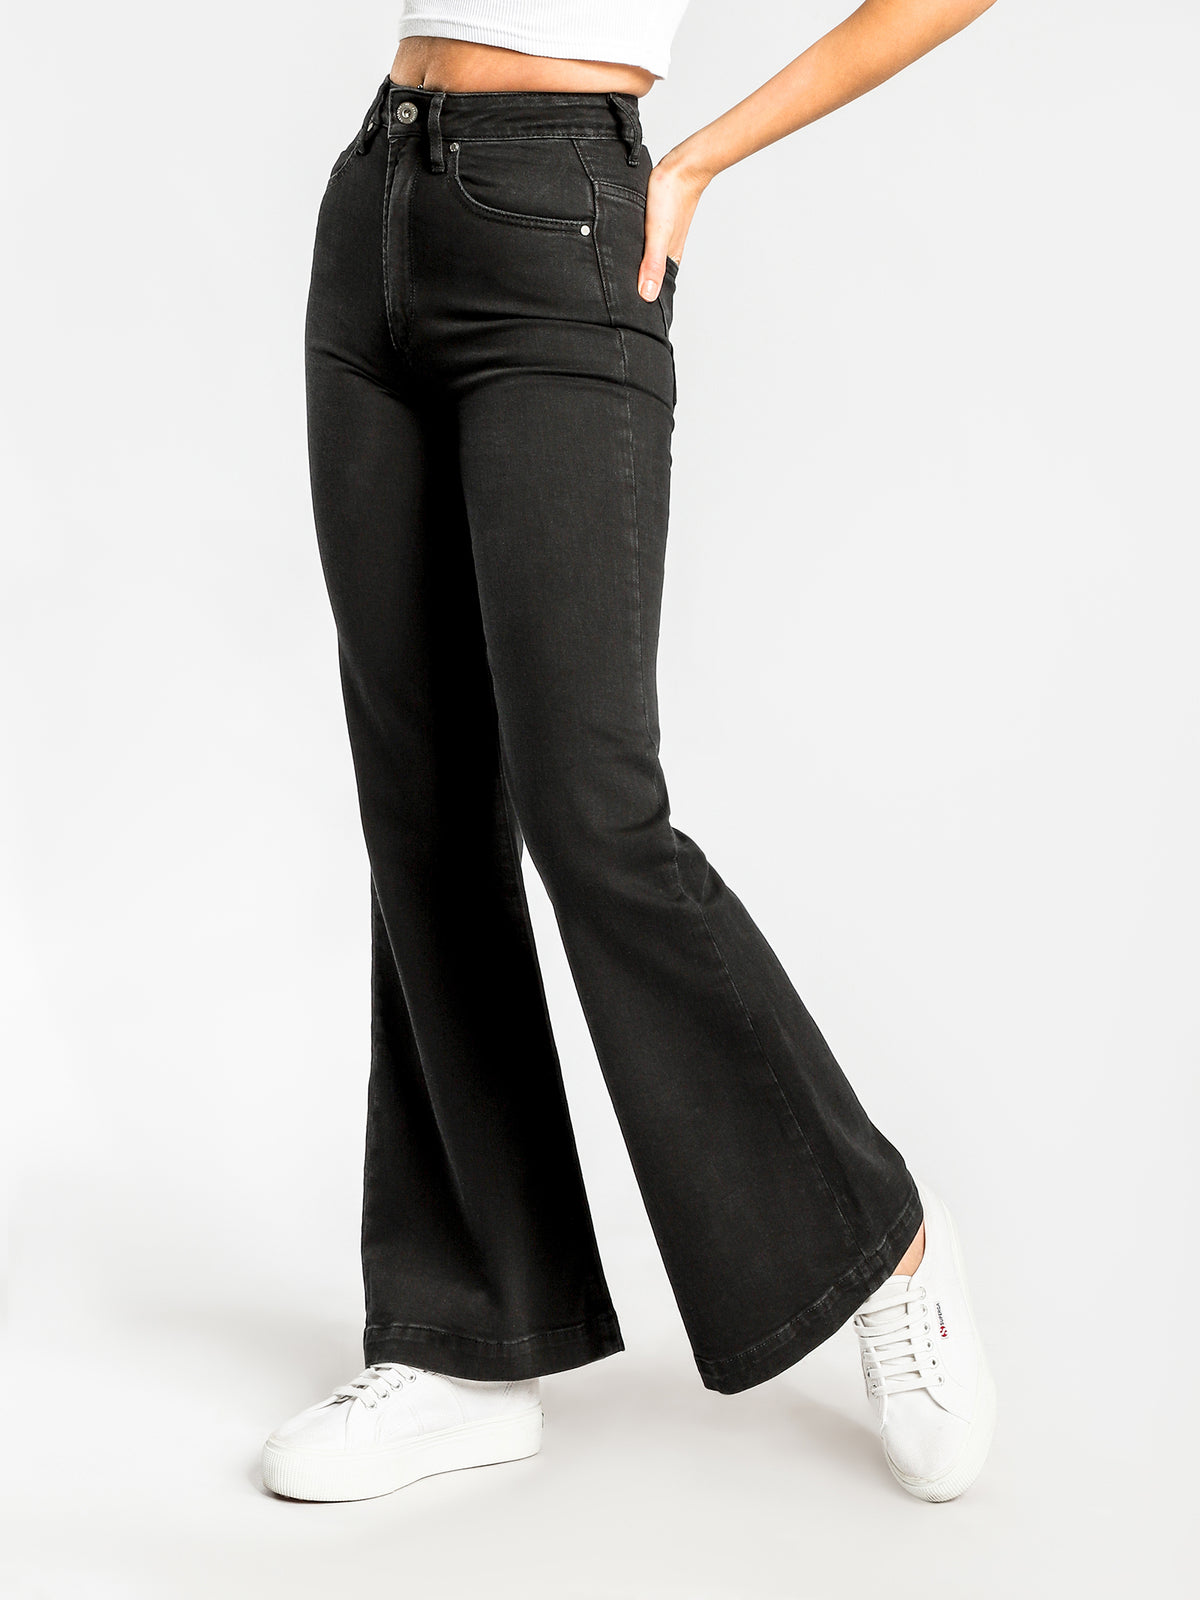 Edee Flared Jeans in Black-Out Denim